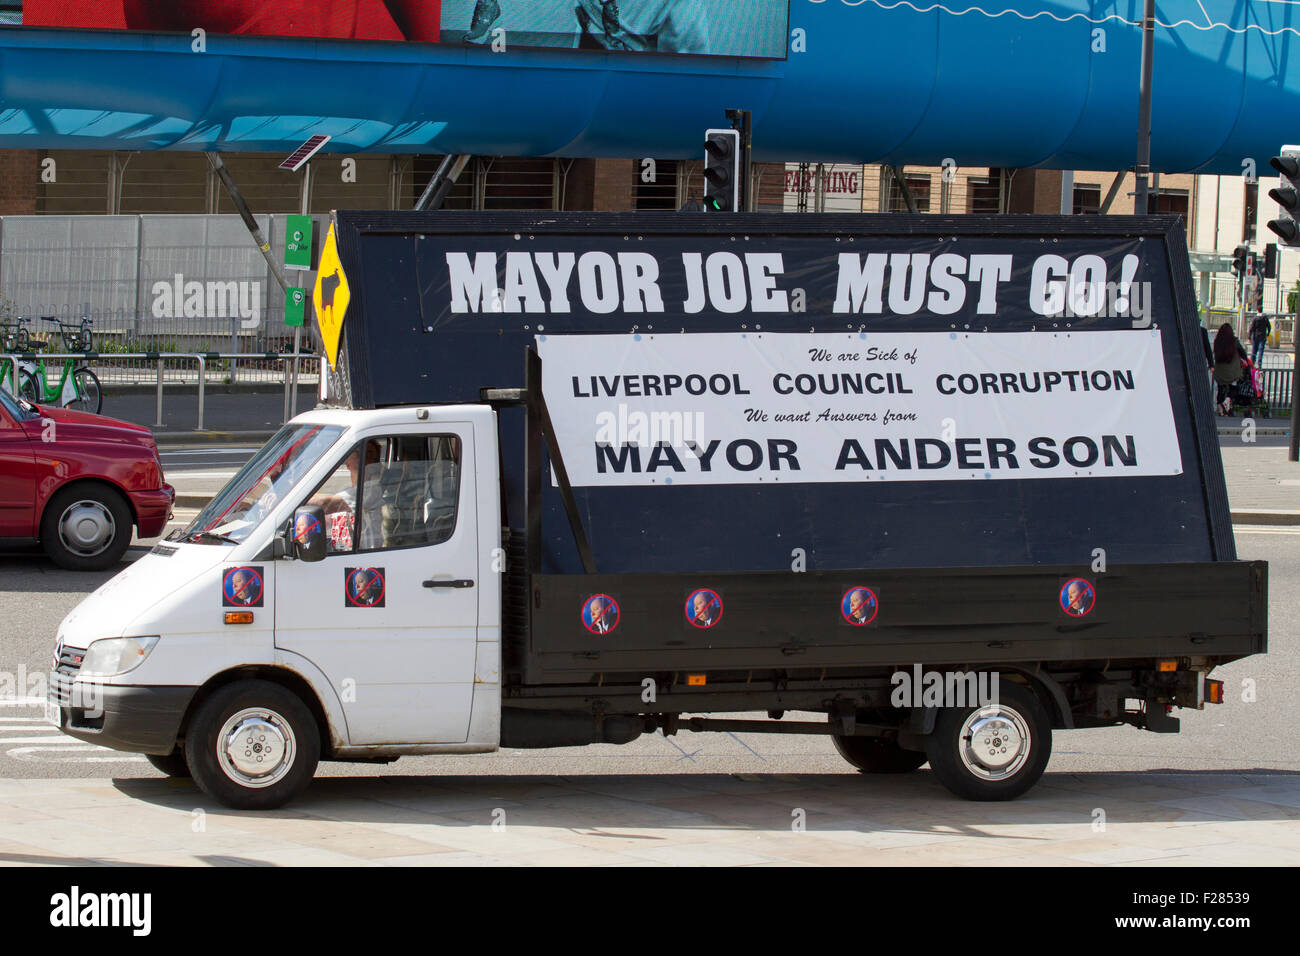 Parked campaign vehicle with poster calling for removal of local Mayor Anderson, Liverpool, Merseyside, UK - Stock Image